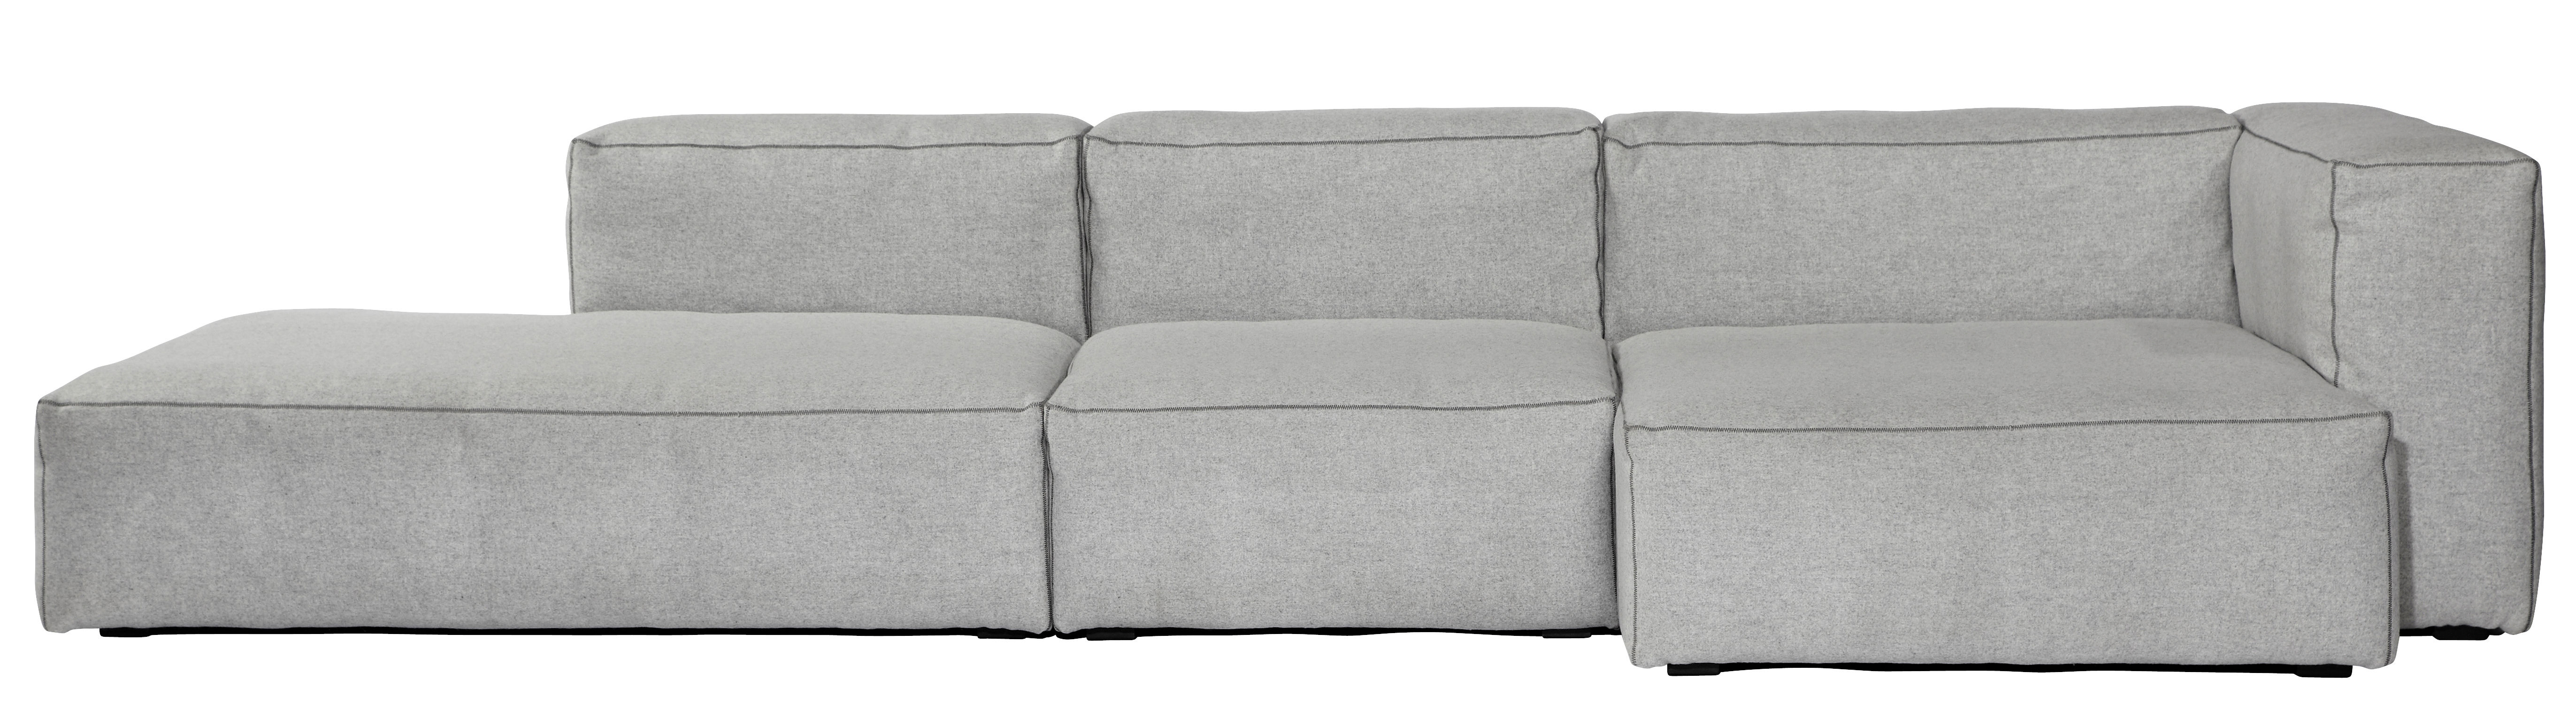 Furniture - Sofas - Soft Mags Corner sofa - Right armrest - L 314 cm by Hay - Light grey / Right armrest - Goose feather, Kvadrat fabric, Particle board, Super soft foam